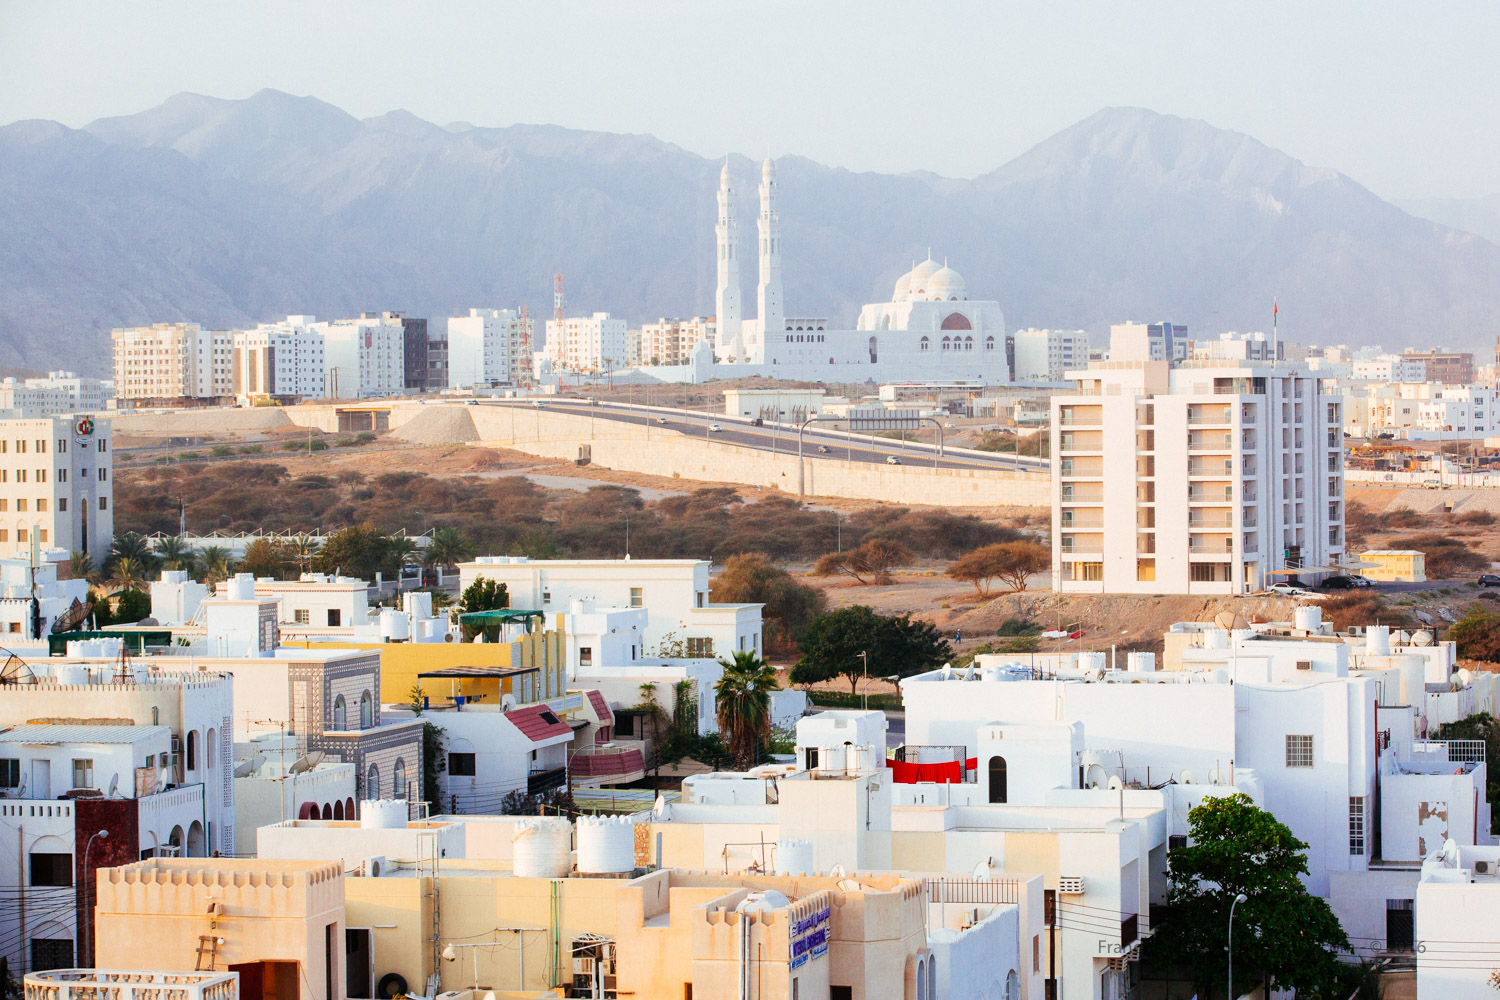 In the early morning, the mosque Saeed Bin Taimur Masjid seen from Ibis Hotel.In the background, the Western Al Hajar Mountains run through the northern coastline of the city.